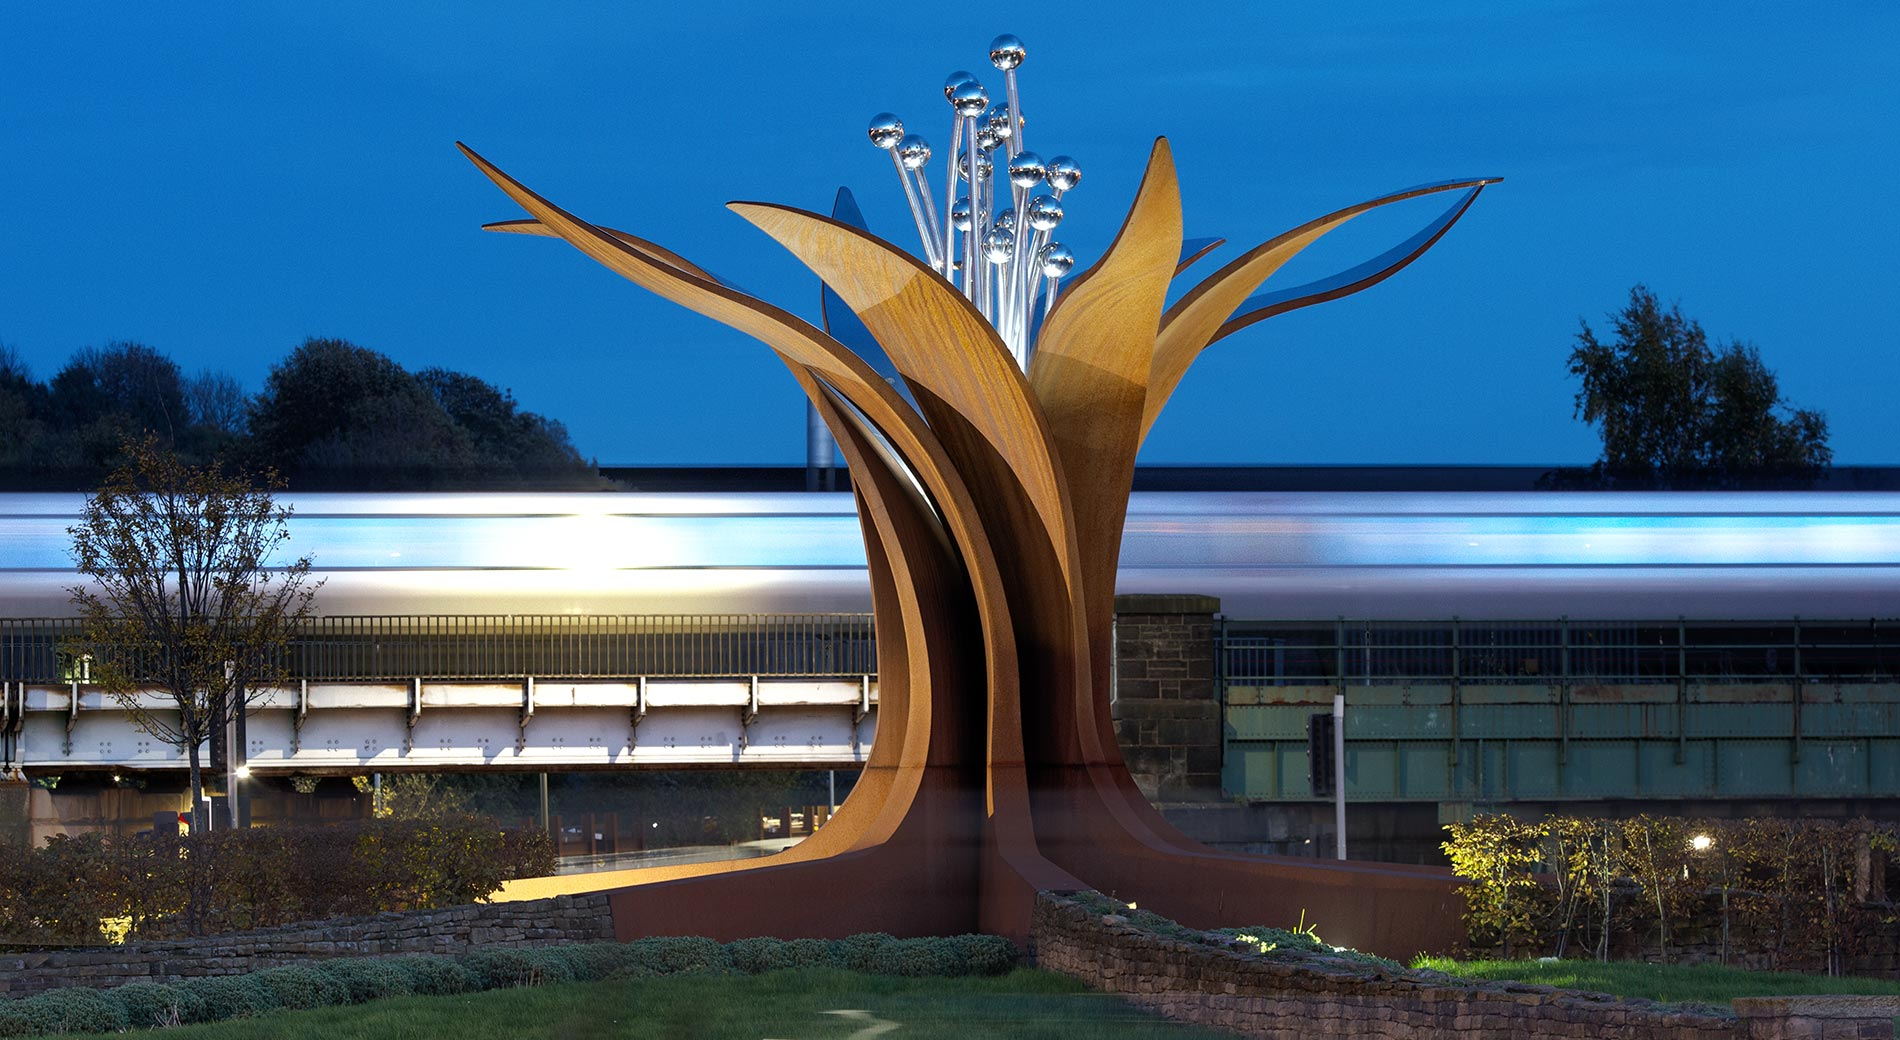 Chesterfield Growth Sculpure at dusk with speeding train